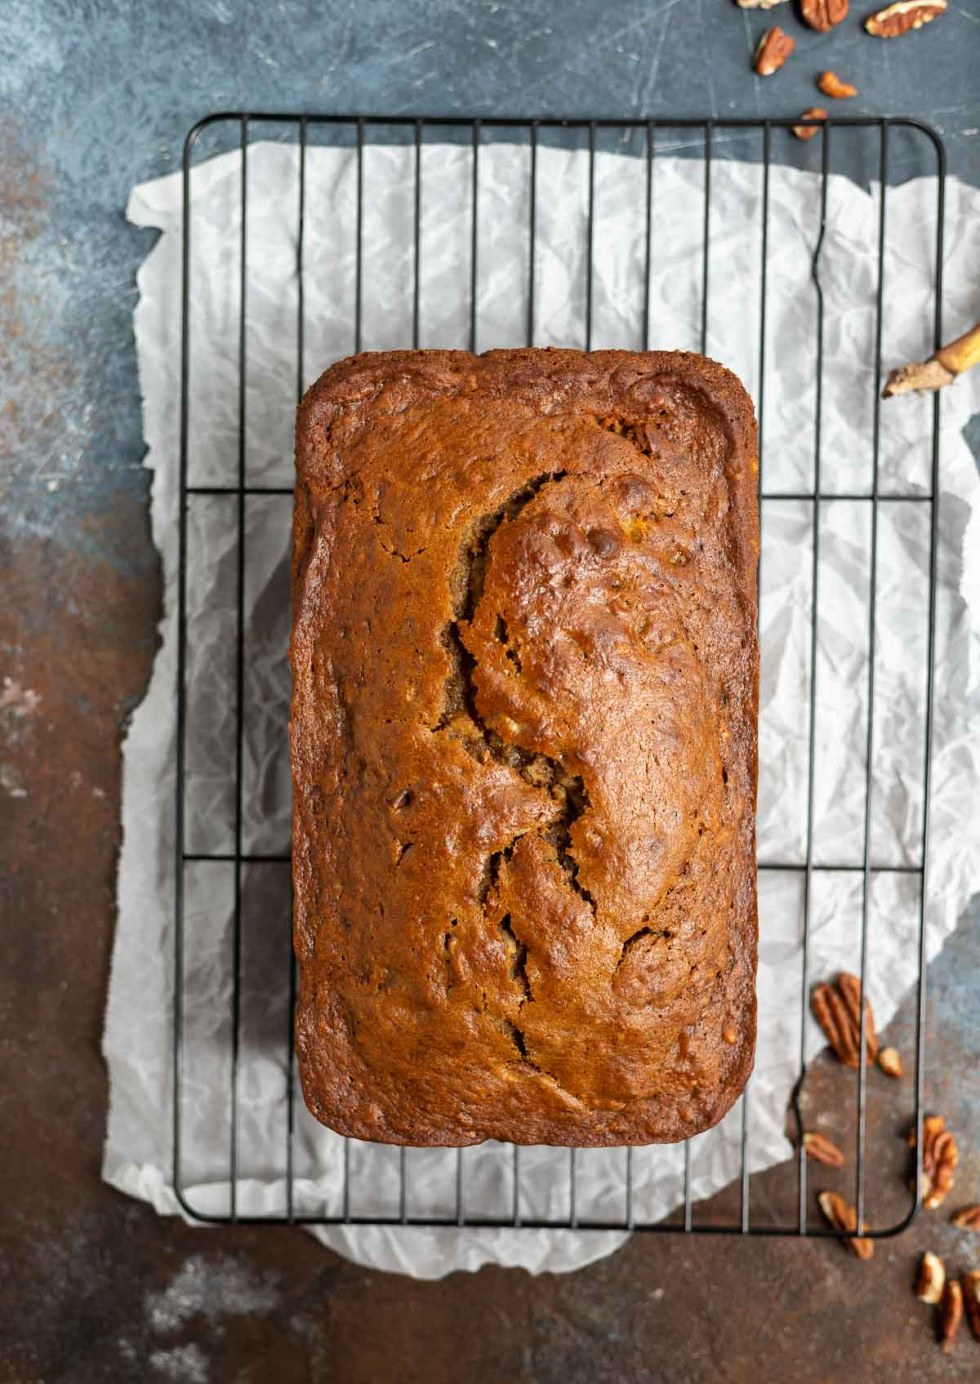 fresh baked banana bread on cooling rack